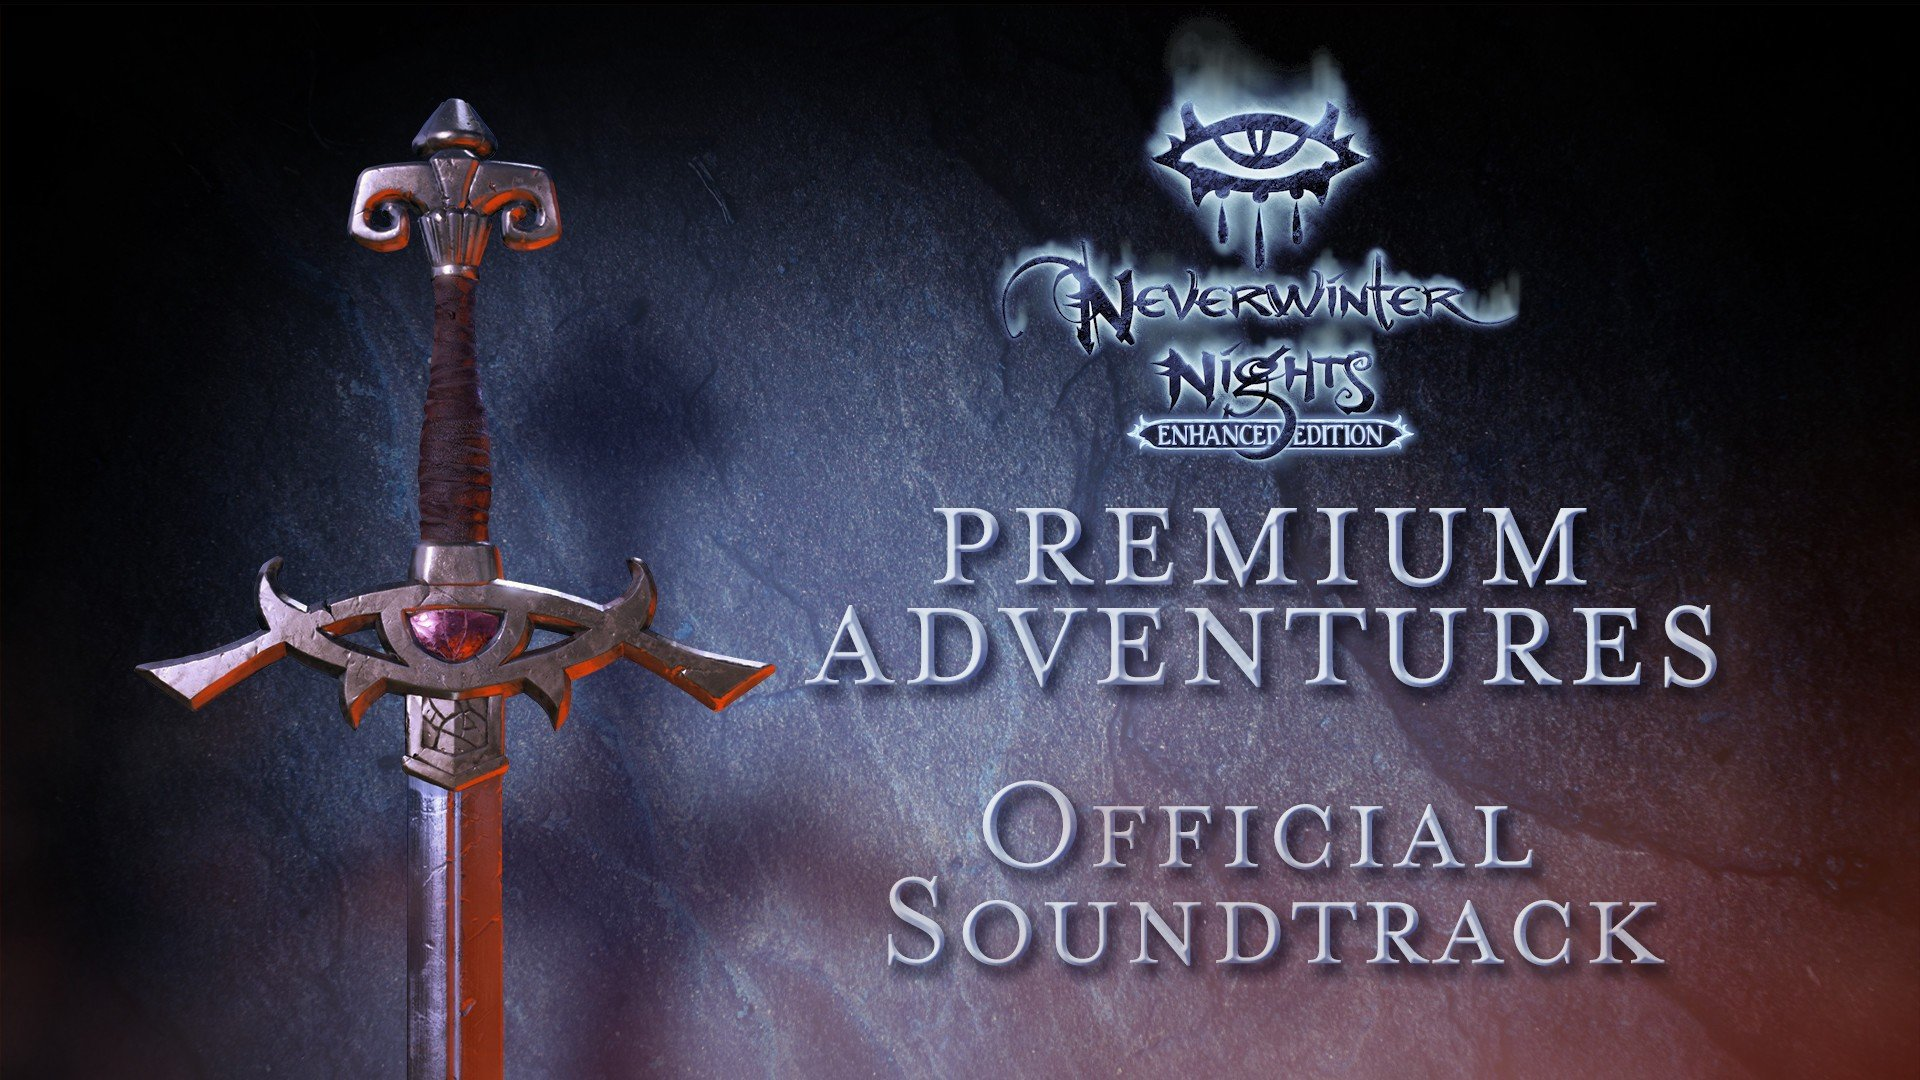 Neverwinter Nights: Premium Adventures Official Soundtrack